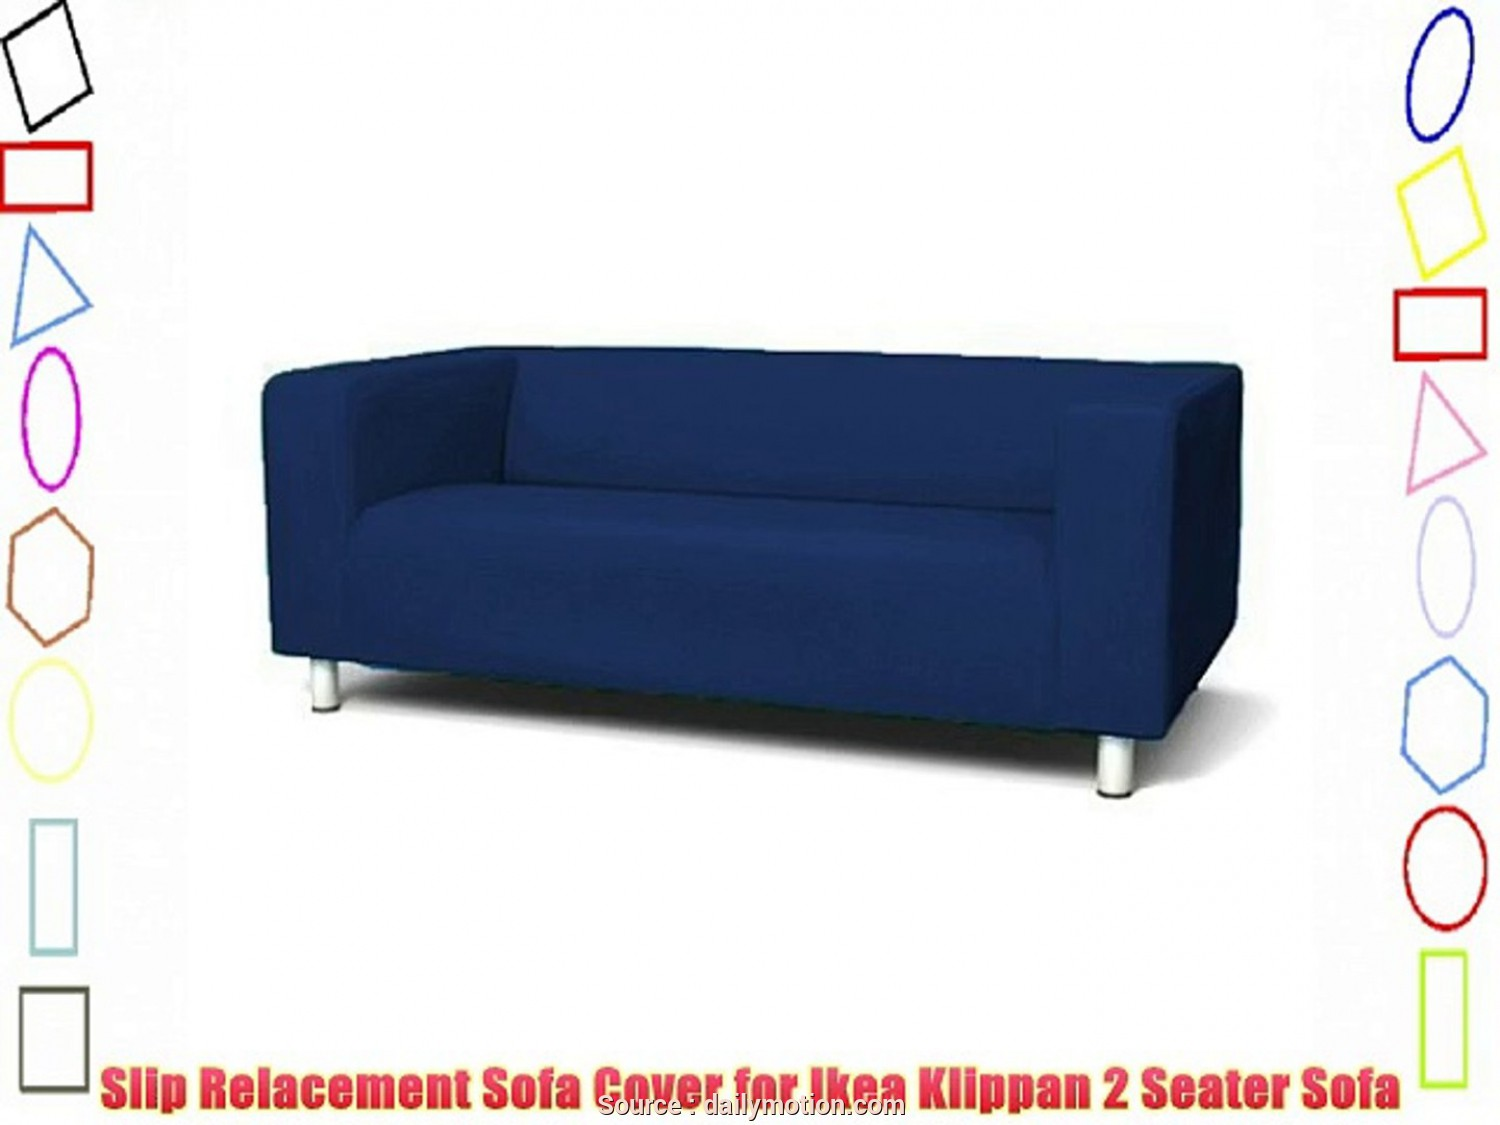 Sofa Klippan Ikea Malaysia, Eccezionale Sofa Slip Replacement Cover, Ikea Klippan 2 Seater Sofa In Royal Blue With Velcro Secure, Video Dailymotion